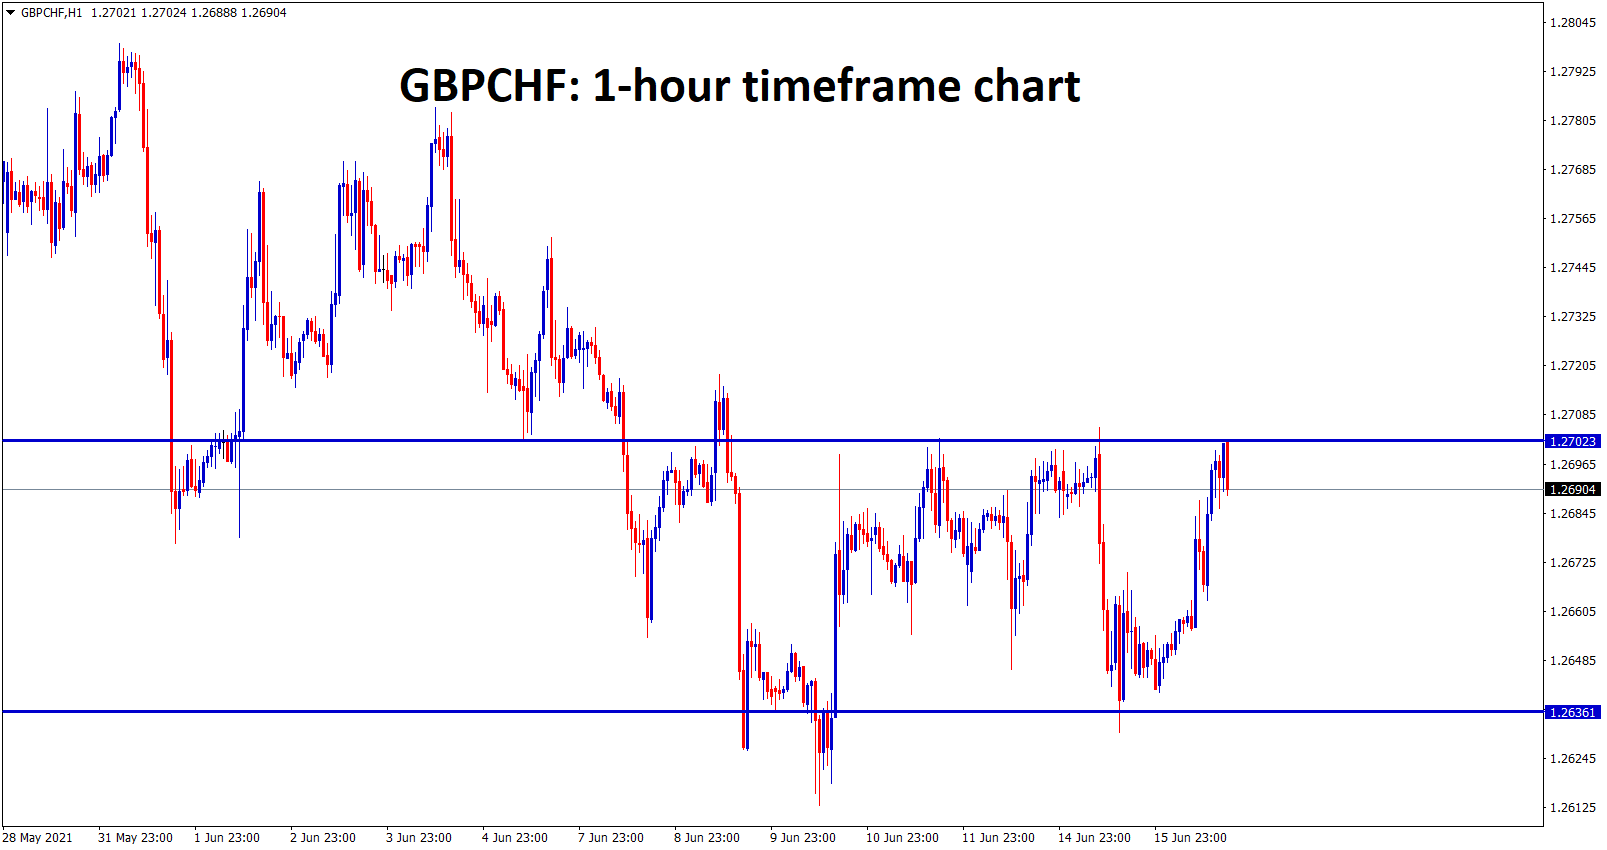 GBPCHF is moving between the ranges now in the correction mode